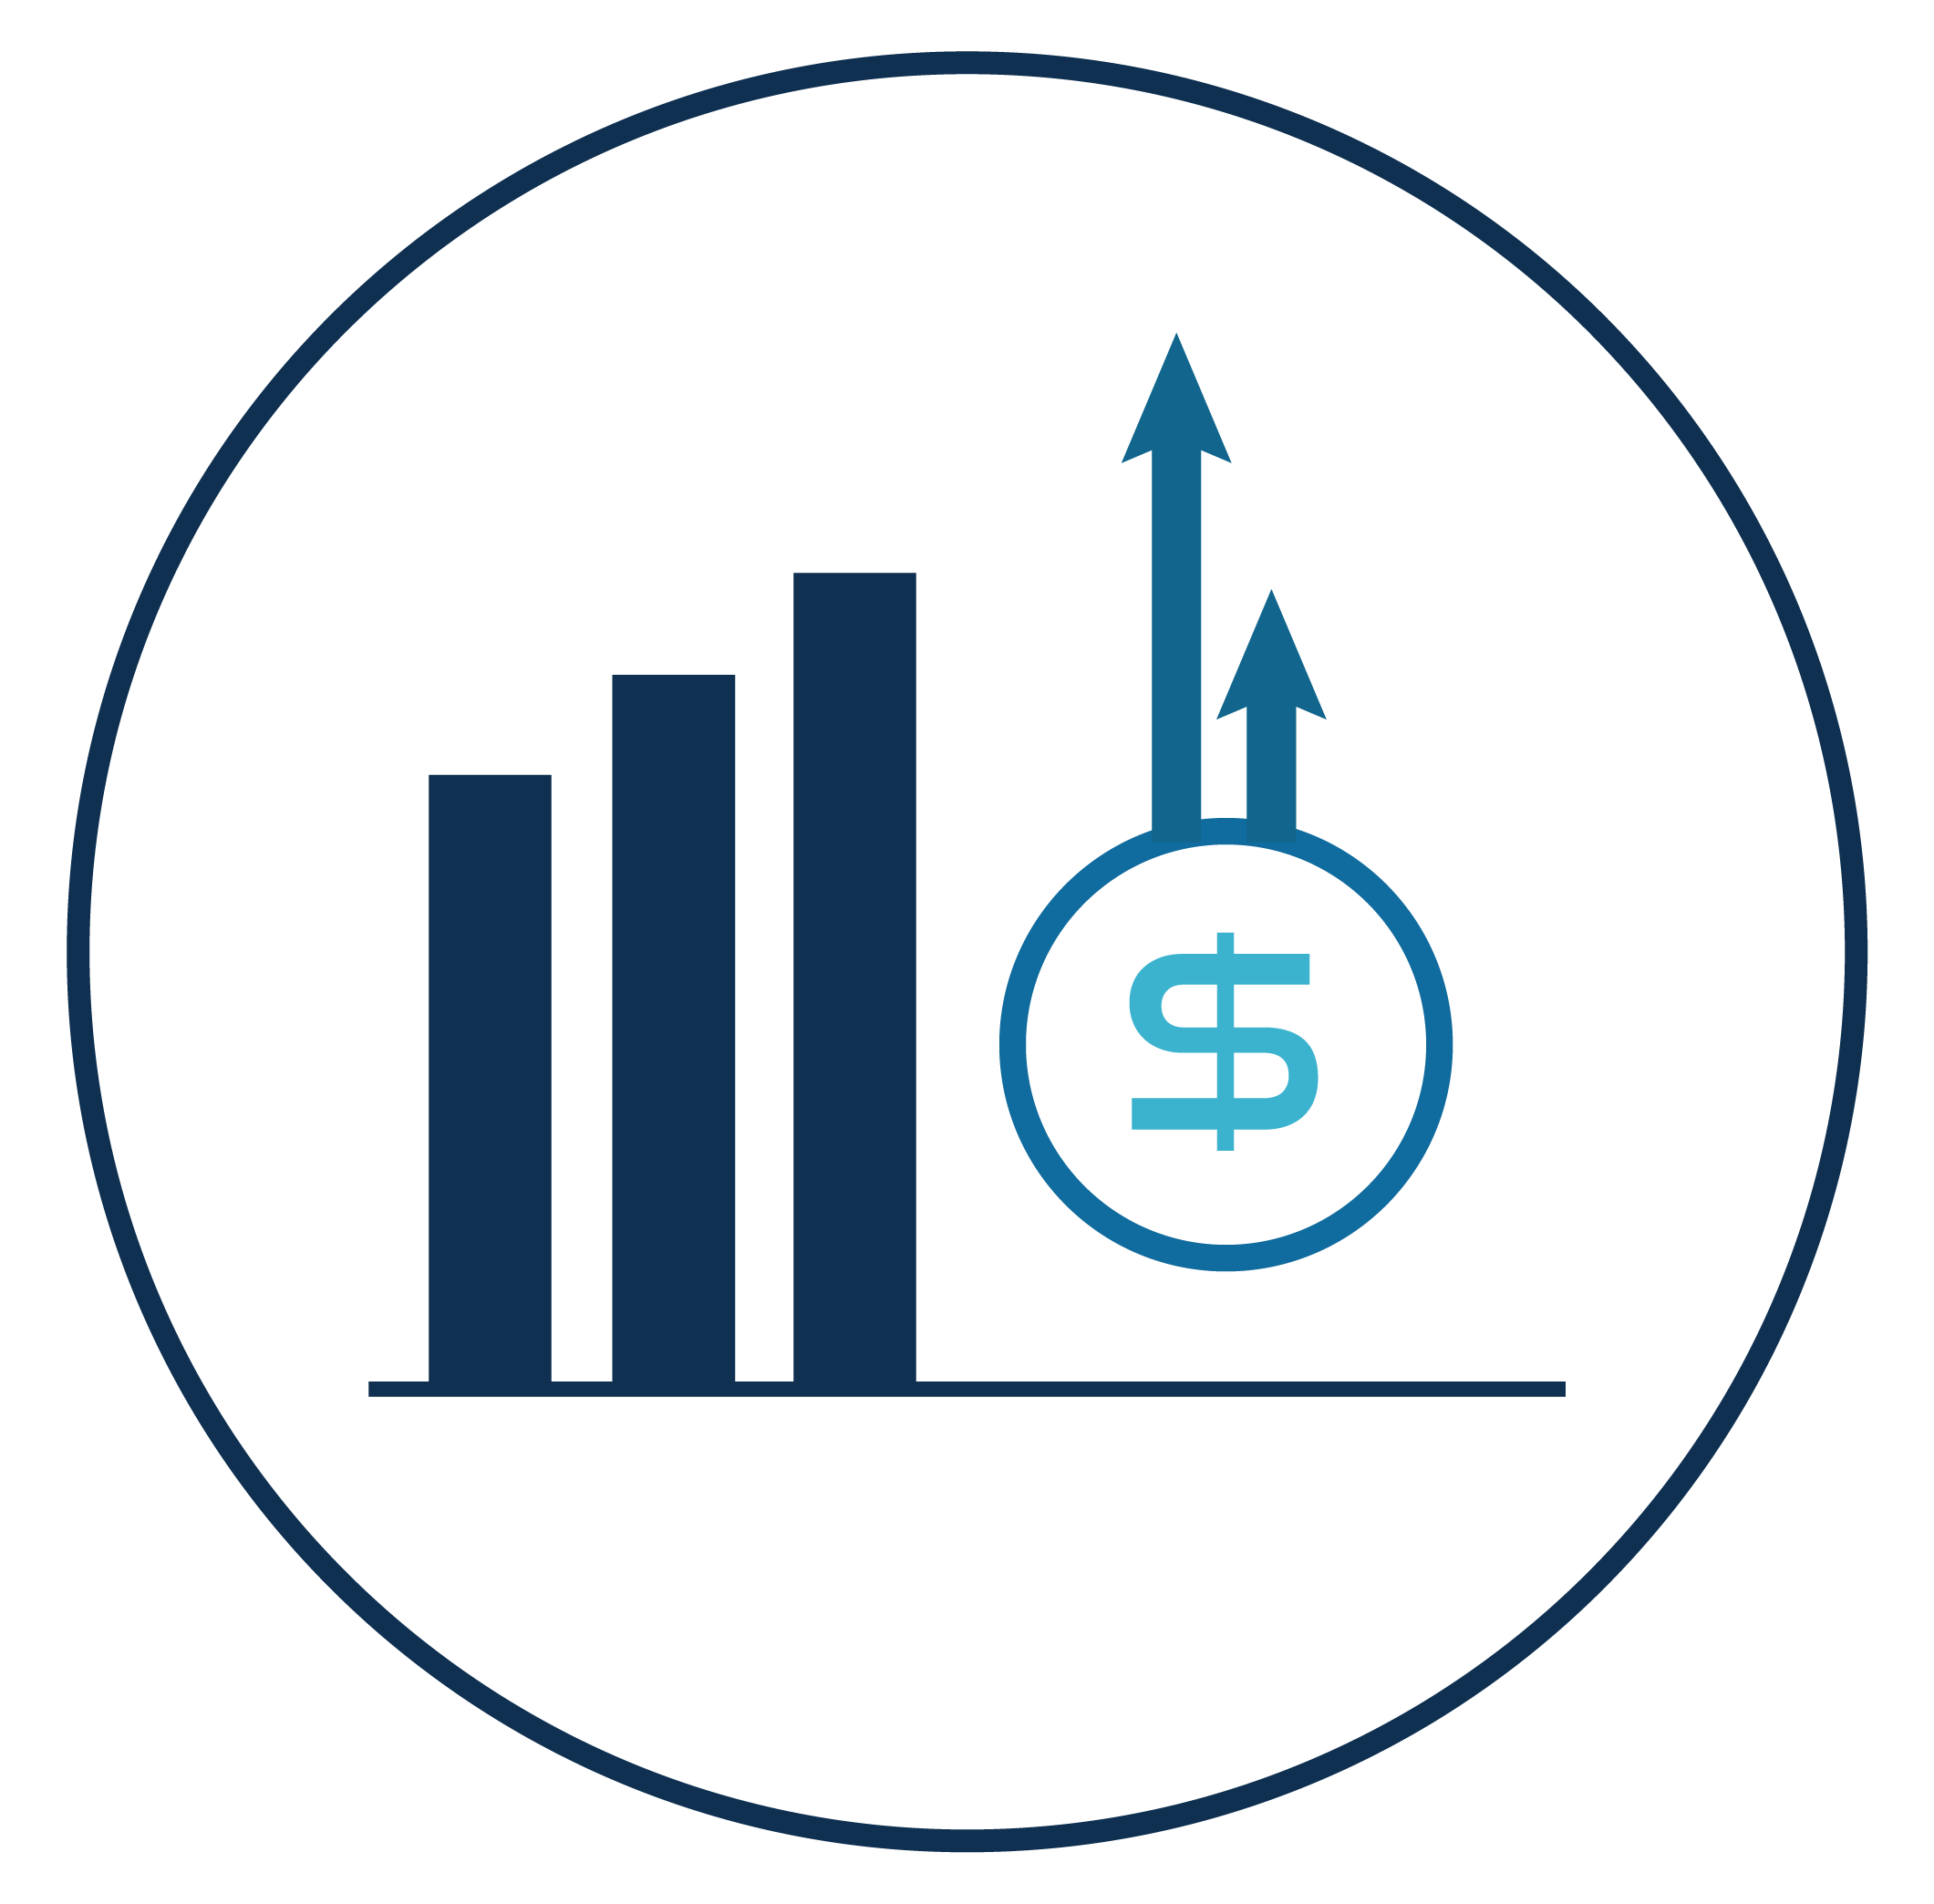 Manage costs & increase ROI